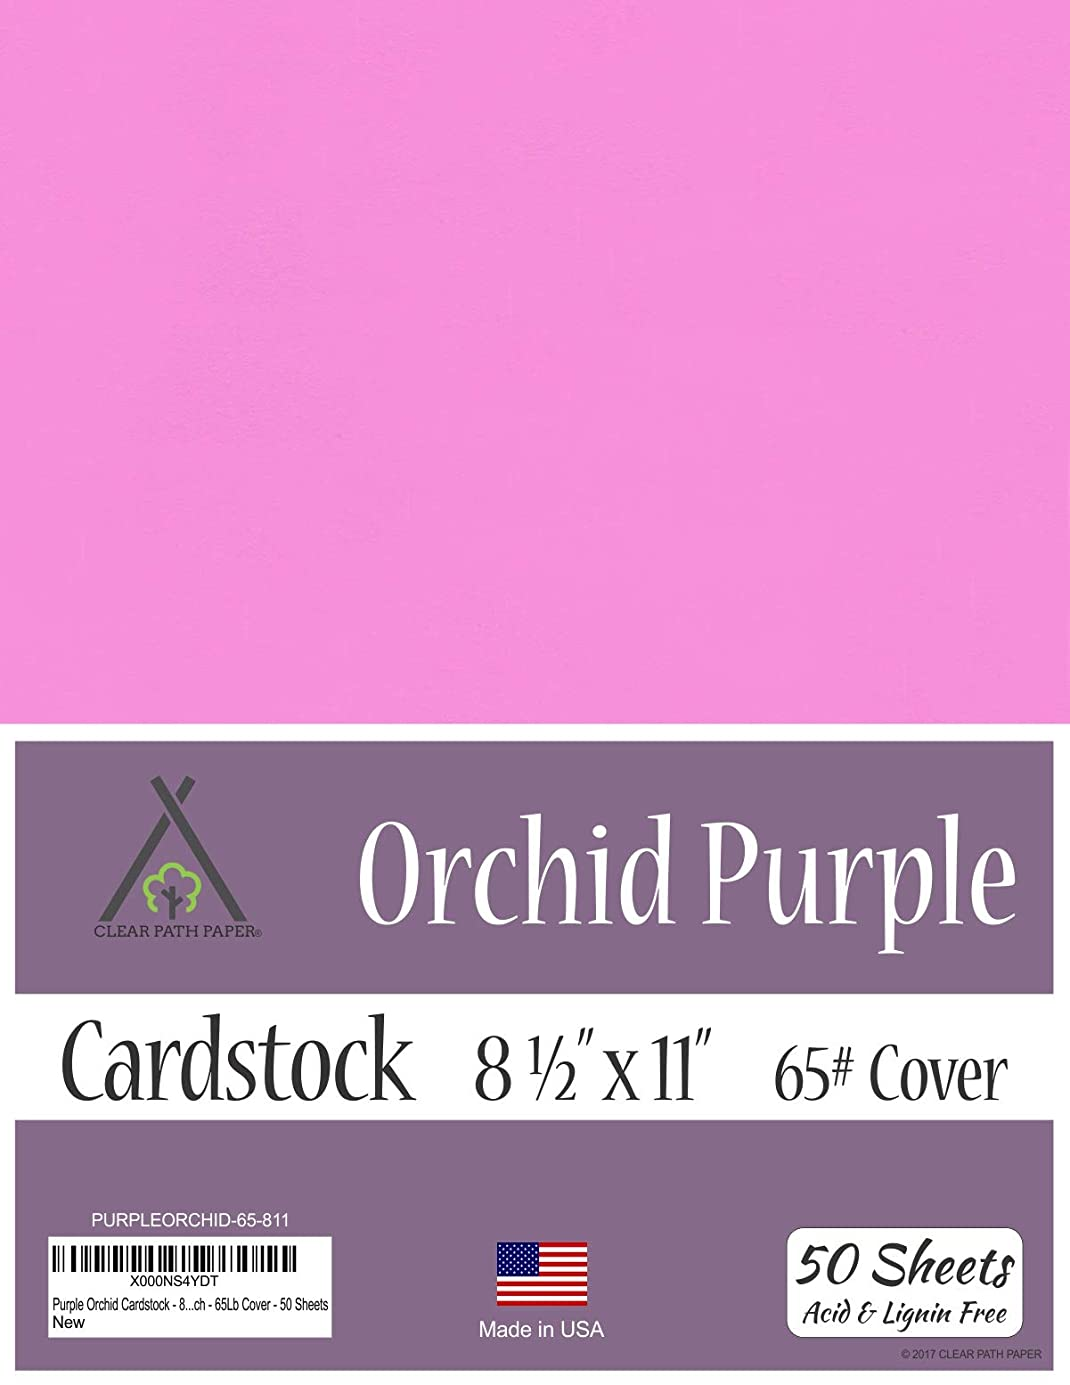 Orchid Purple Cardstock - 8.5 x 11 inch - 65Lb Cover - 50 Sheets hiqqal0573